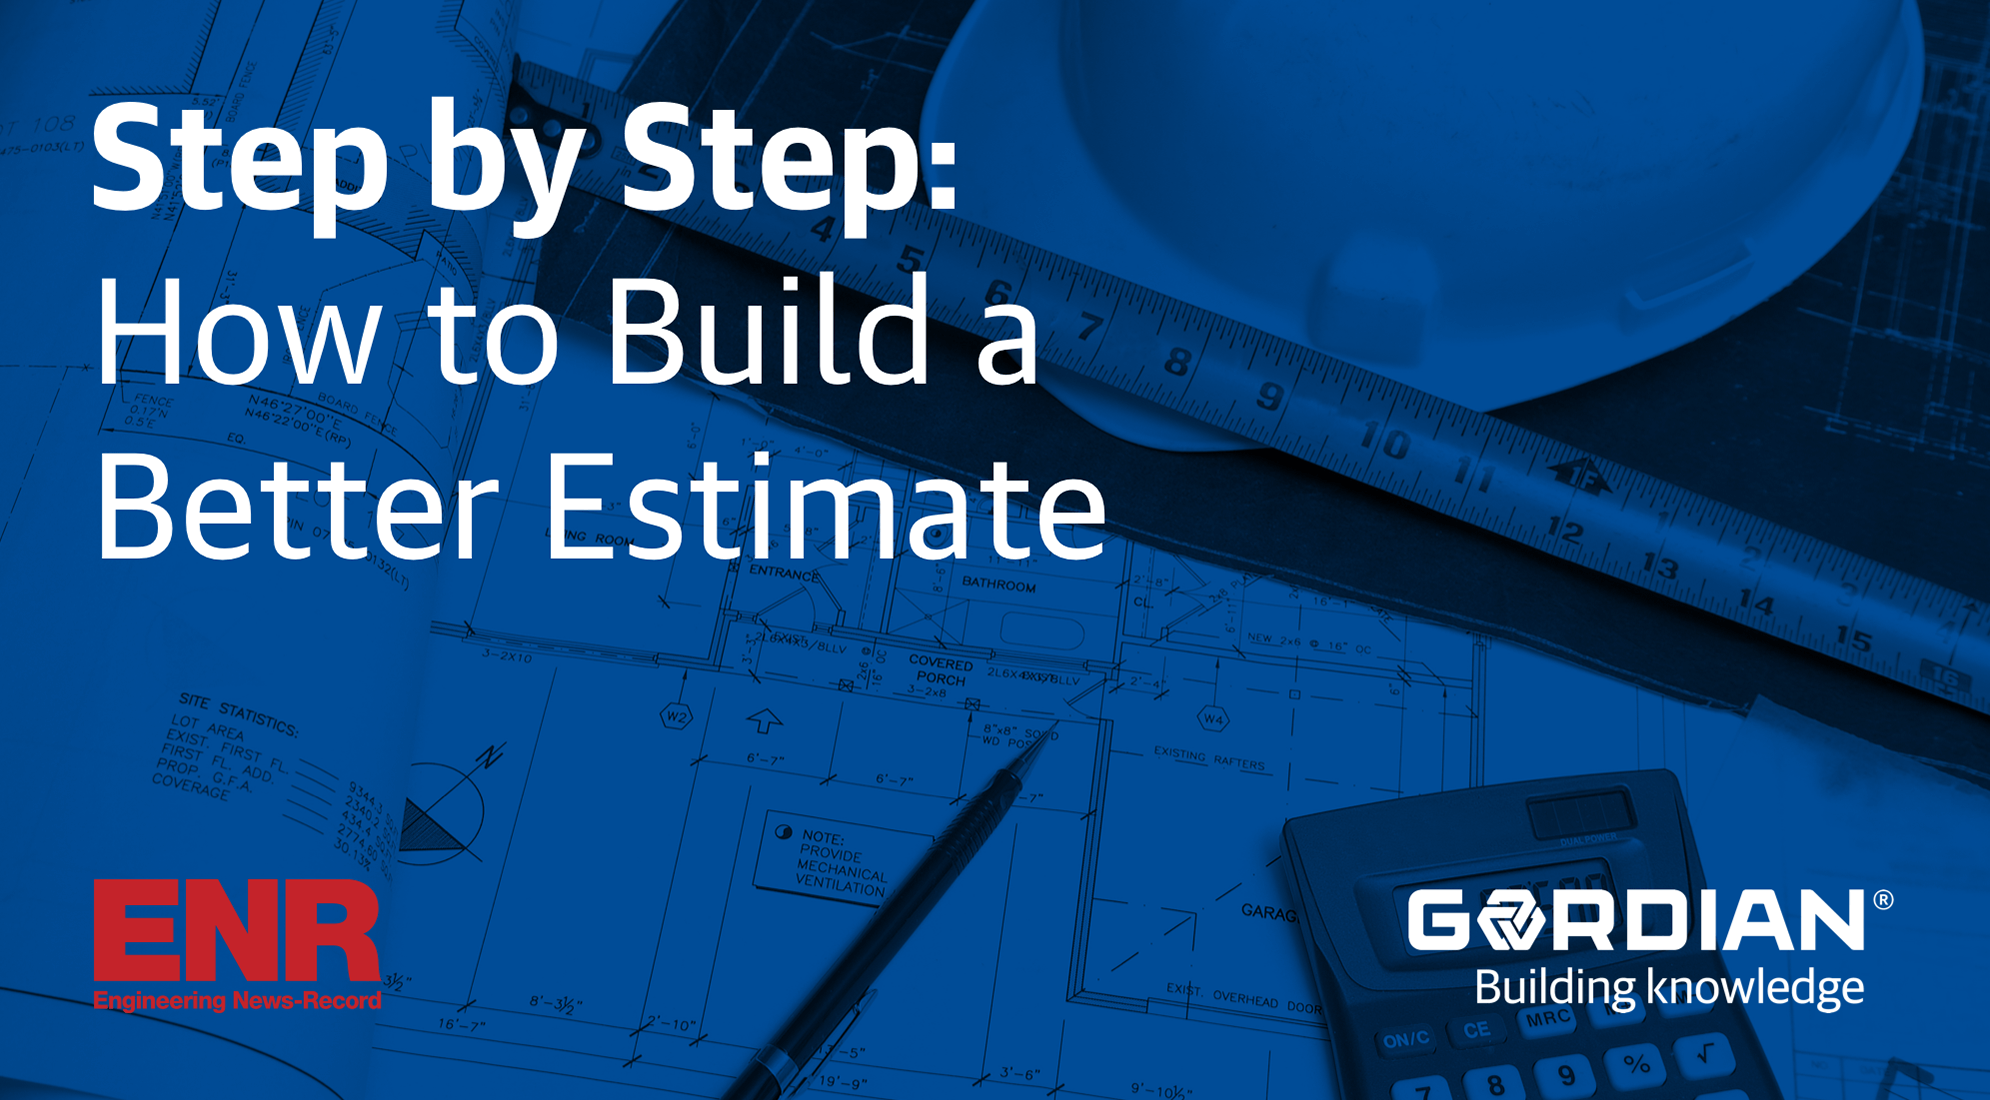 Step by Step: How to Build a Better Estimate 2